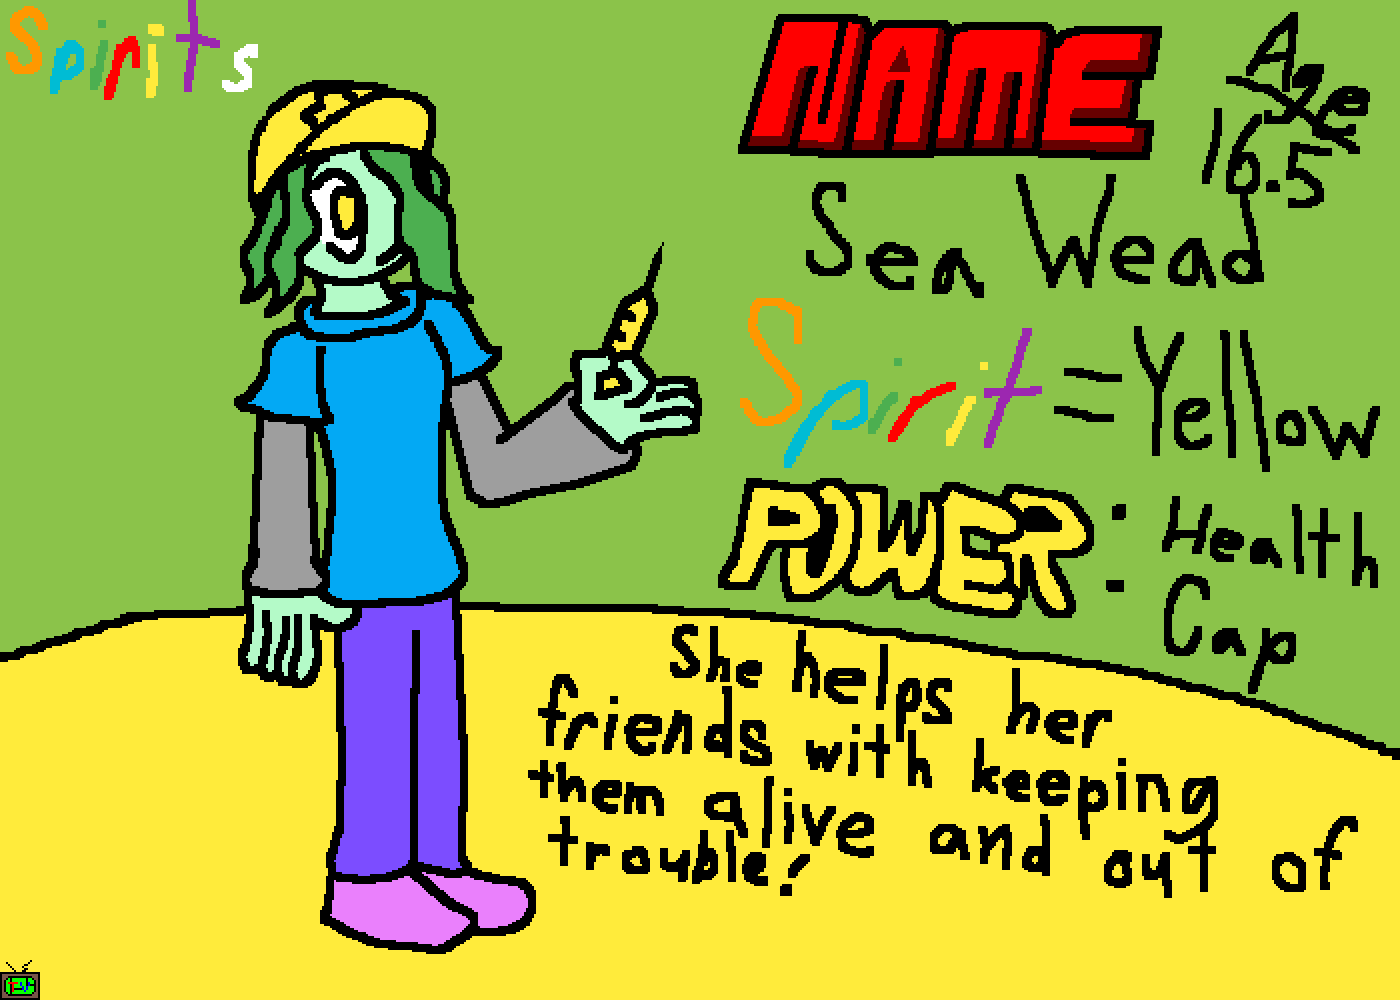 Spirits Sea Wead Bio by Gaming04